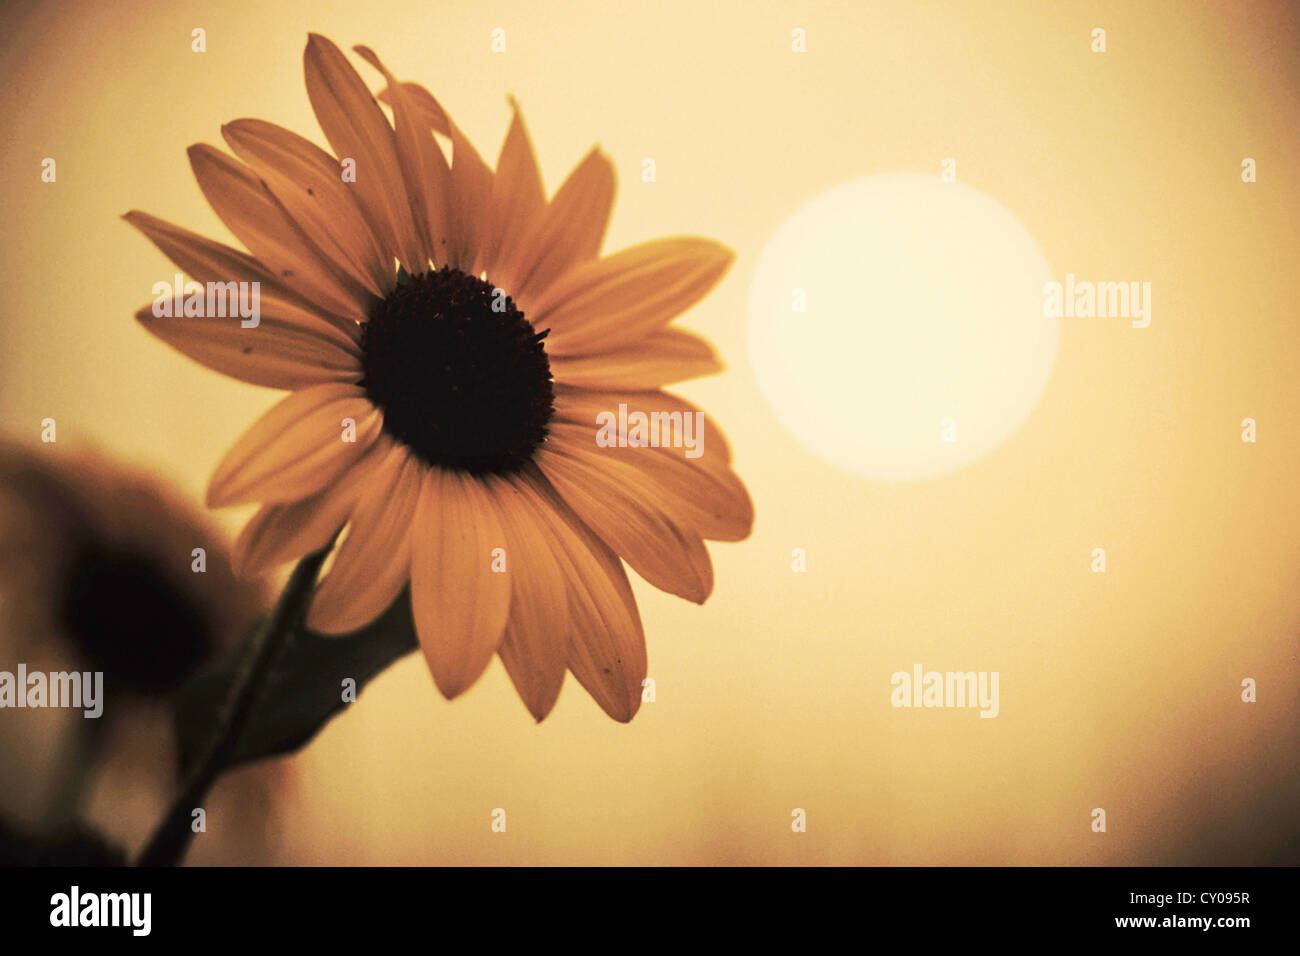 Flower with sun - Stock Image